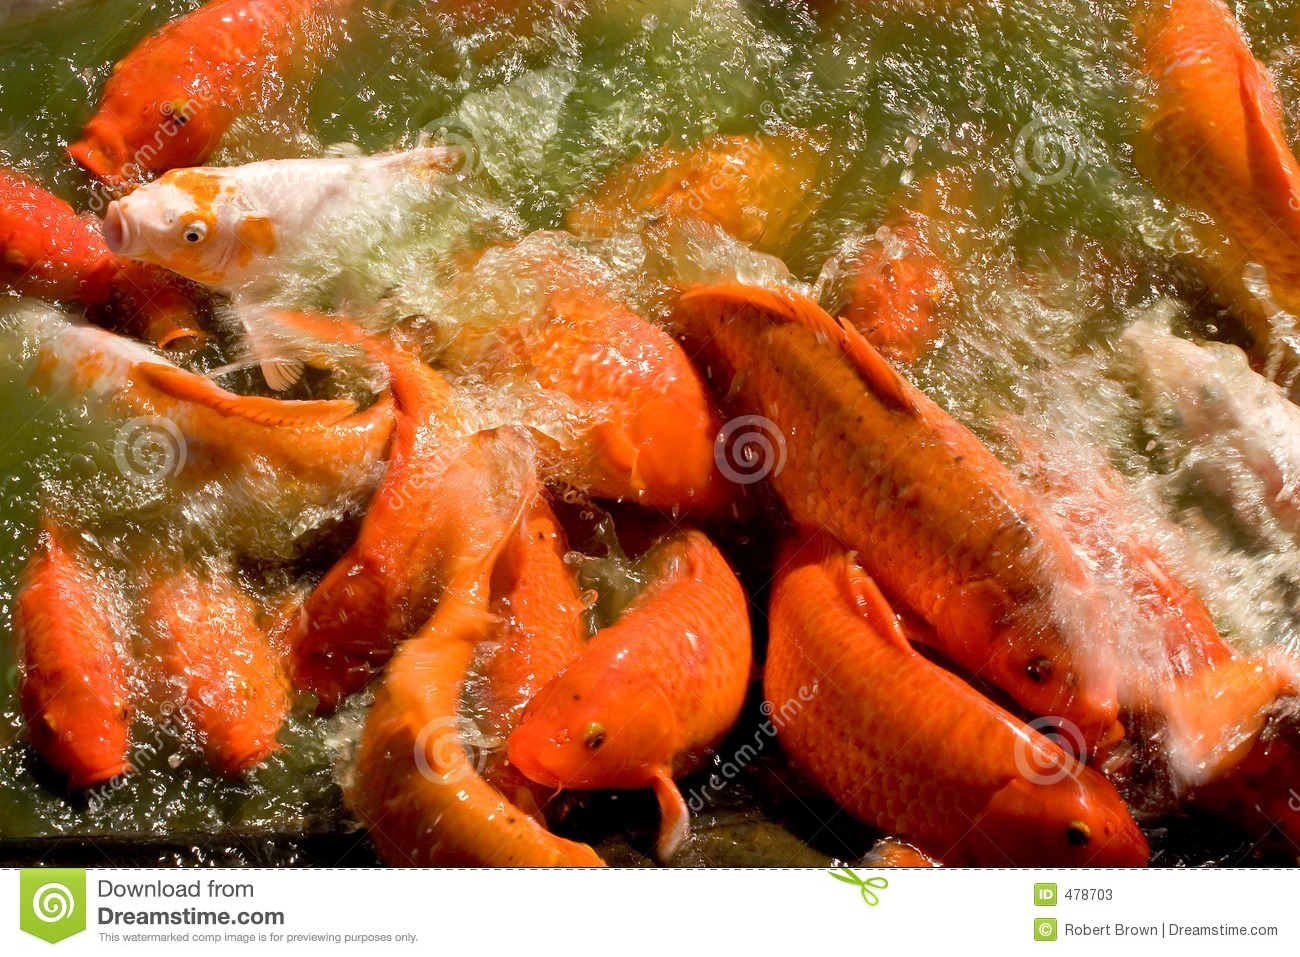 Koi pond stock photos image 478703 for Fish dream meaning pregnancy